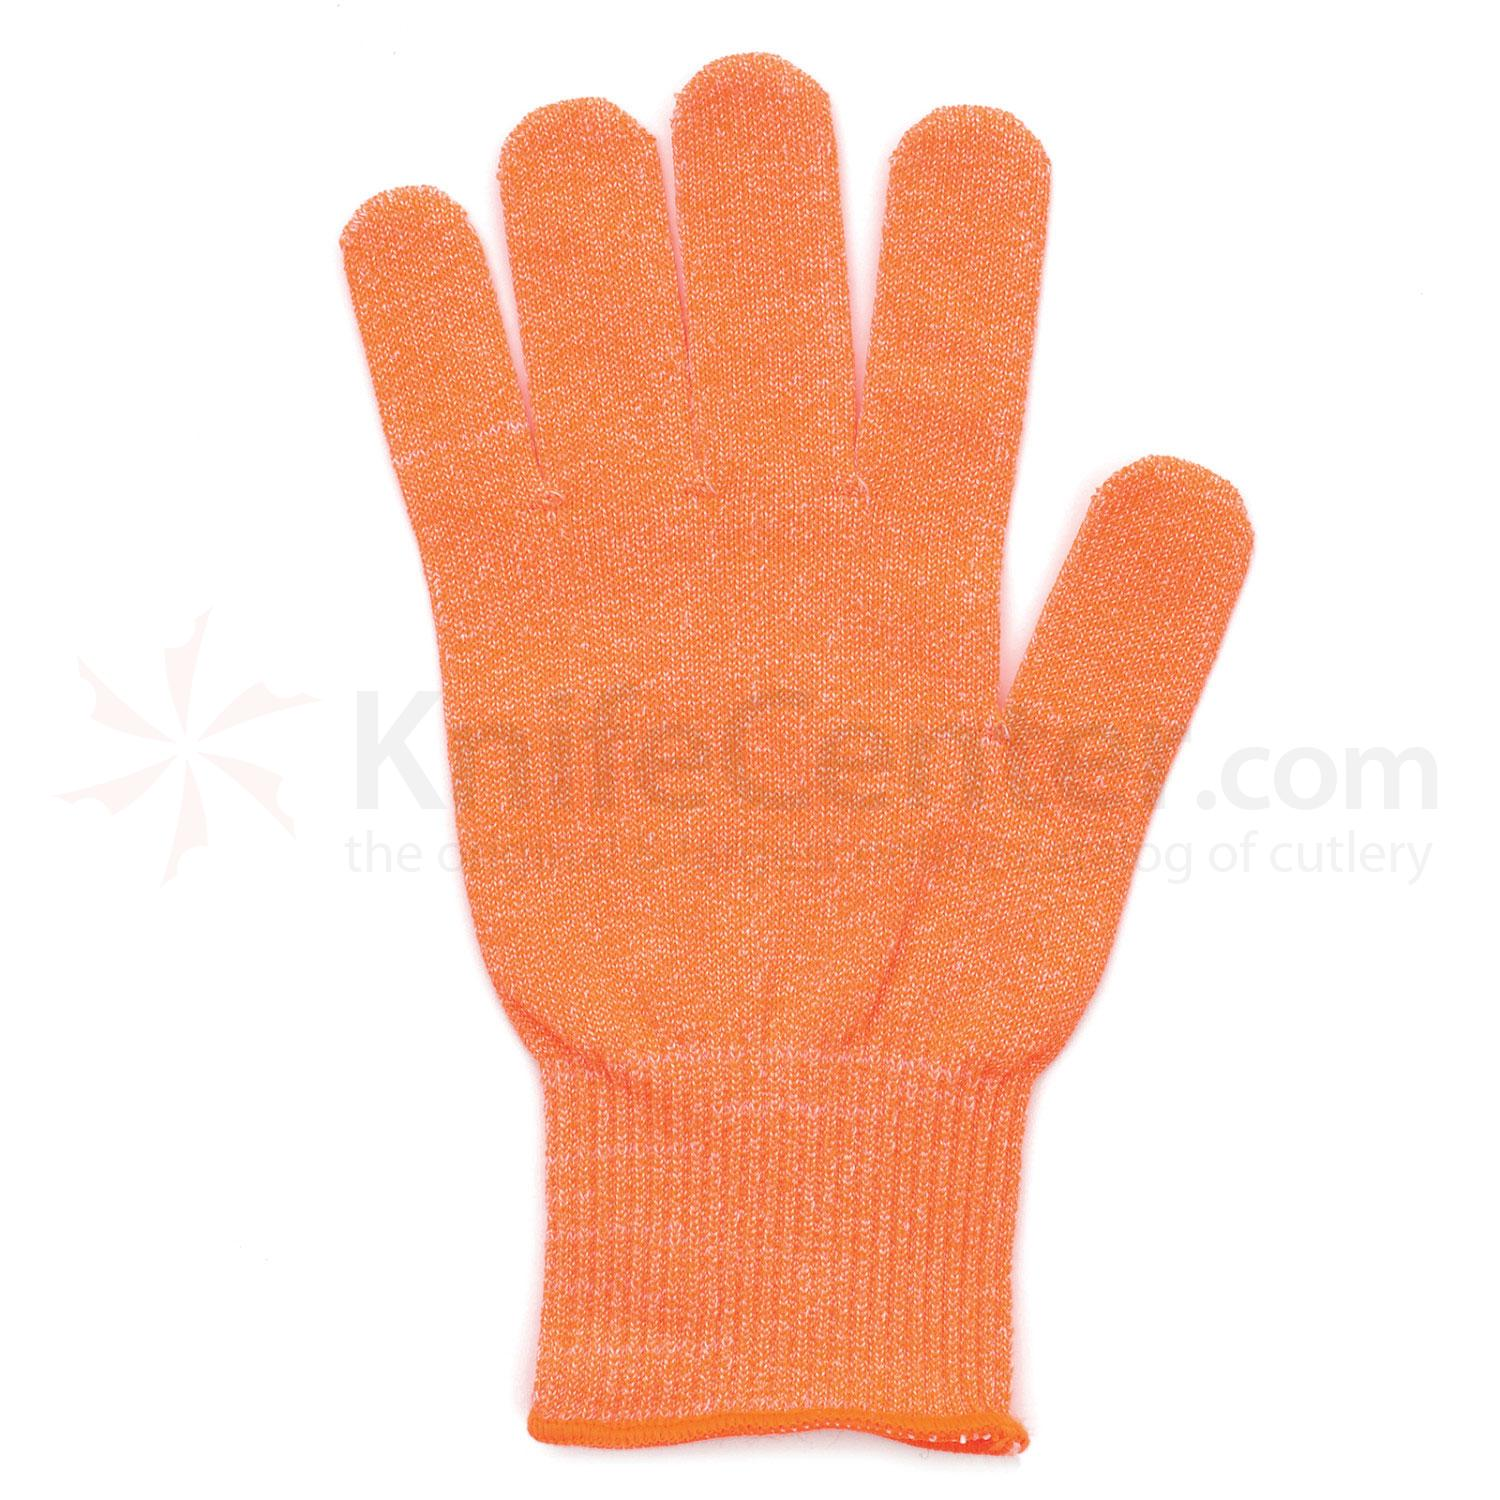 Victorinox Forschner 86300.O Cut Resistant Glove, Safety Orange